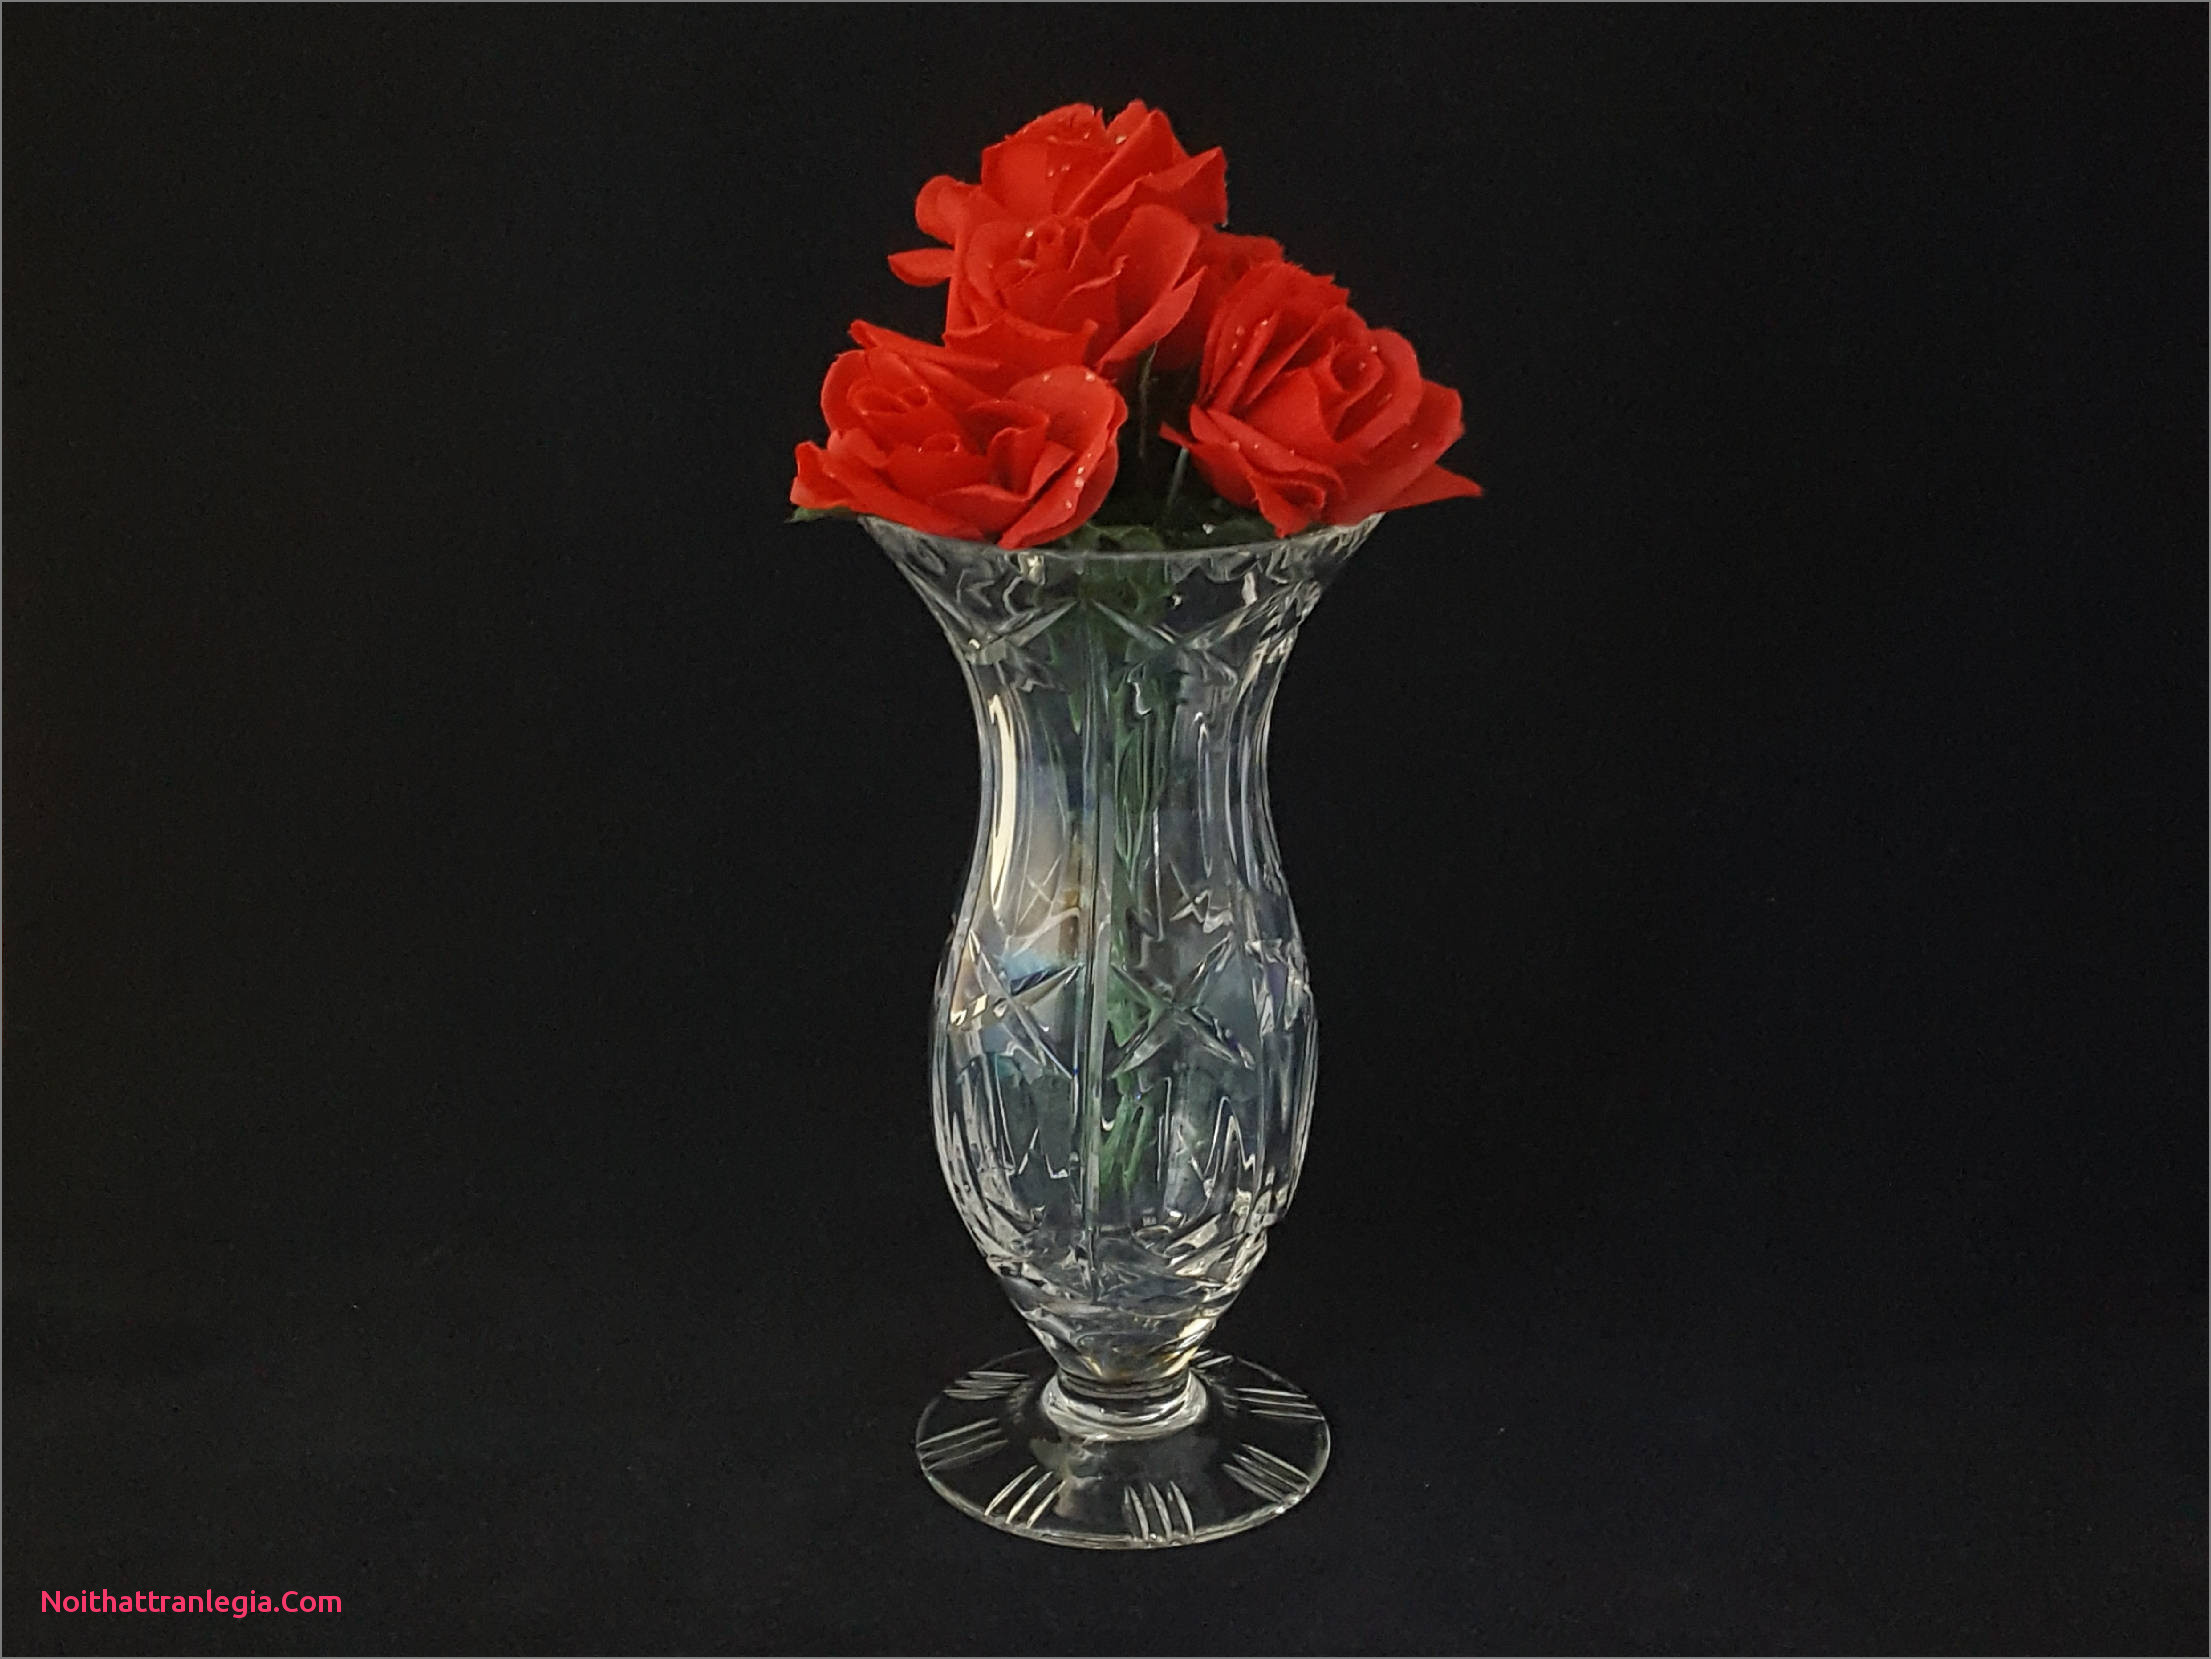 Vintage Rose Colored Glass Vase Of 20 Cut Glass Antique Vase Noithattranlegia Vases Design with Aa¸a½zoom Vintage Cross and Olive Glass Vase